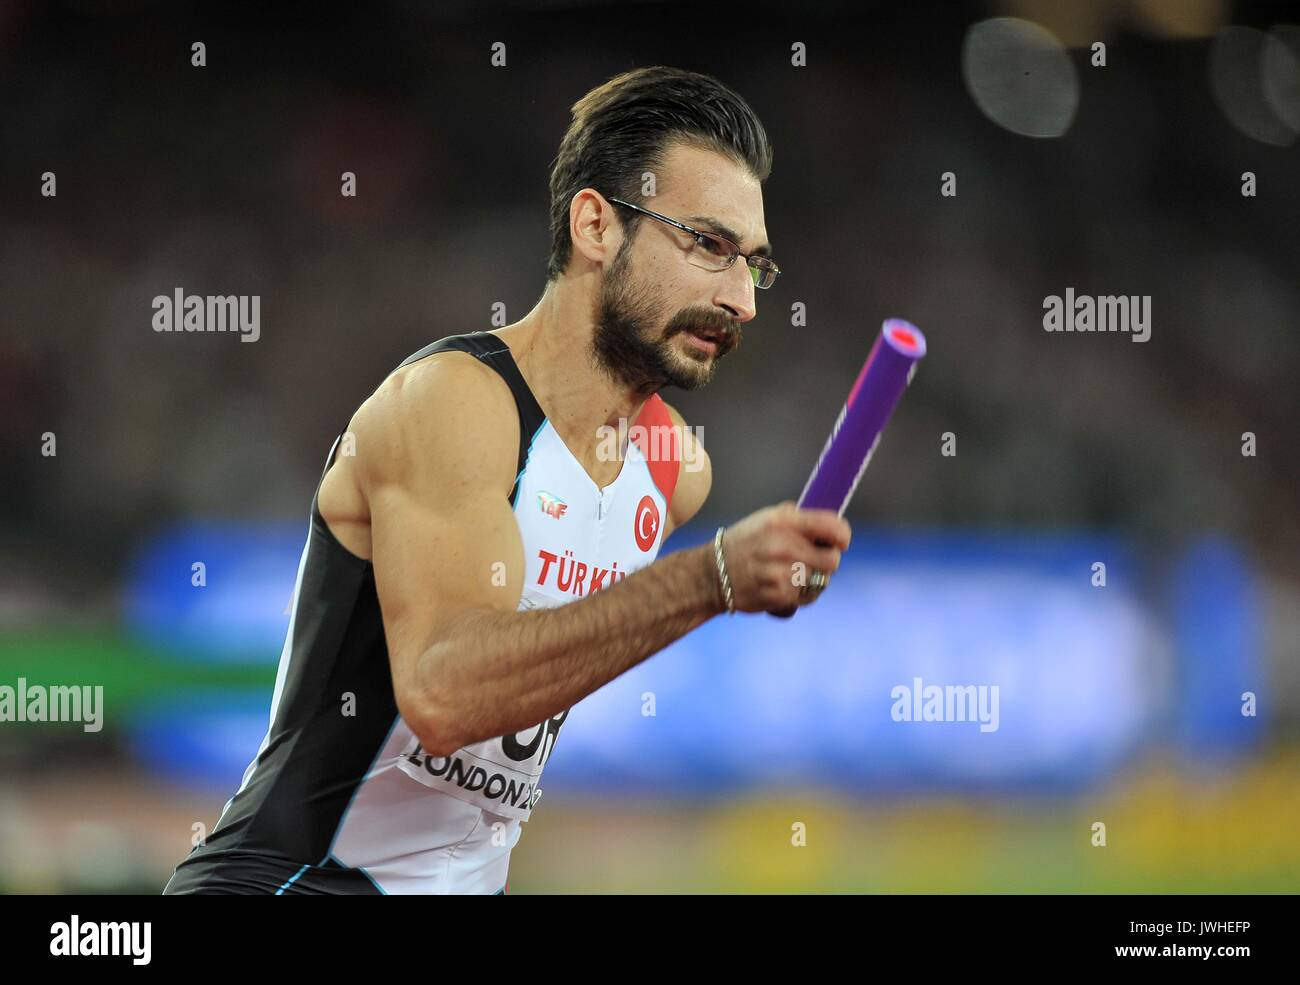 Yigitcan HEKIMOGLU (TUR) at the start of the mens 4 x 100m relay final. IAAF world athletics championships. London Olympic stadium. Queen Elizabeth Olympic park. Stratford. London. UK. 12/08/2017.  MANDATORY CREDIT Garry Bowden/SIPPA - NO UNAUTHORISED USE - +44 7837 394578 - Stock Image